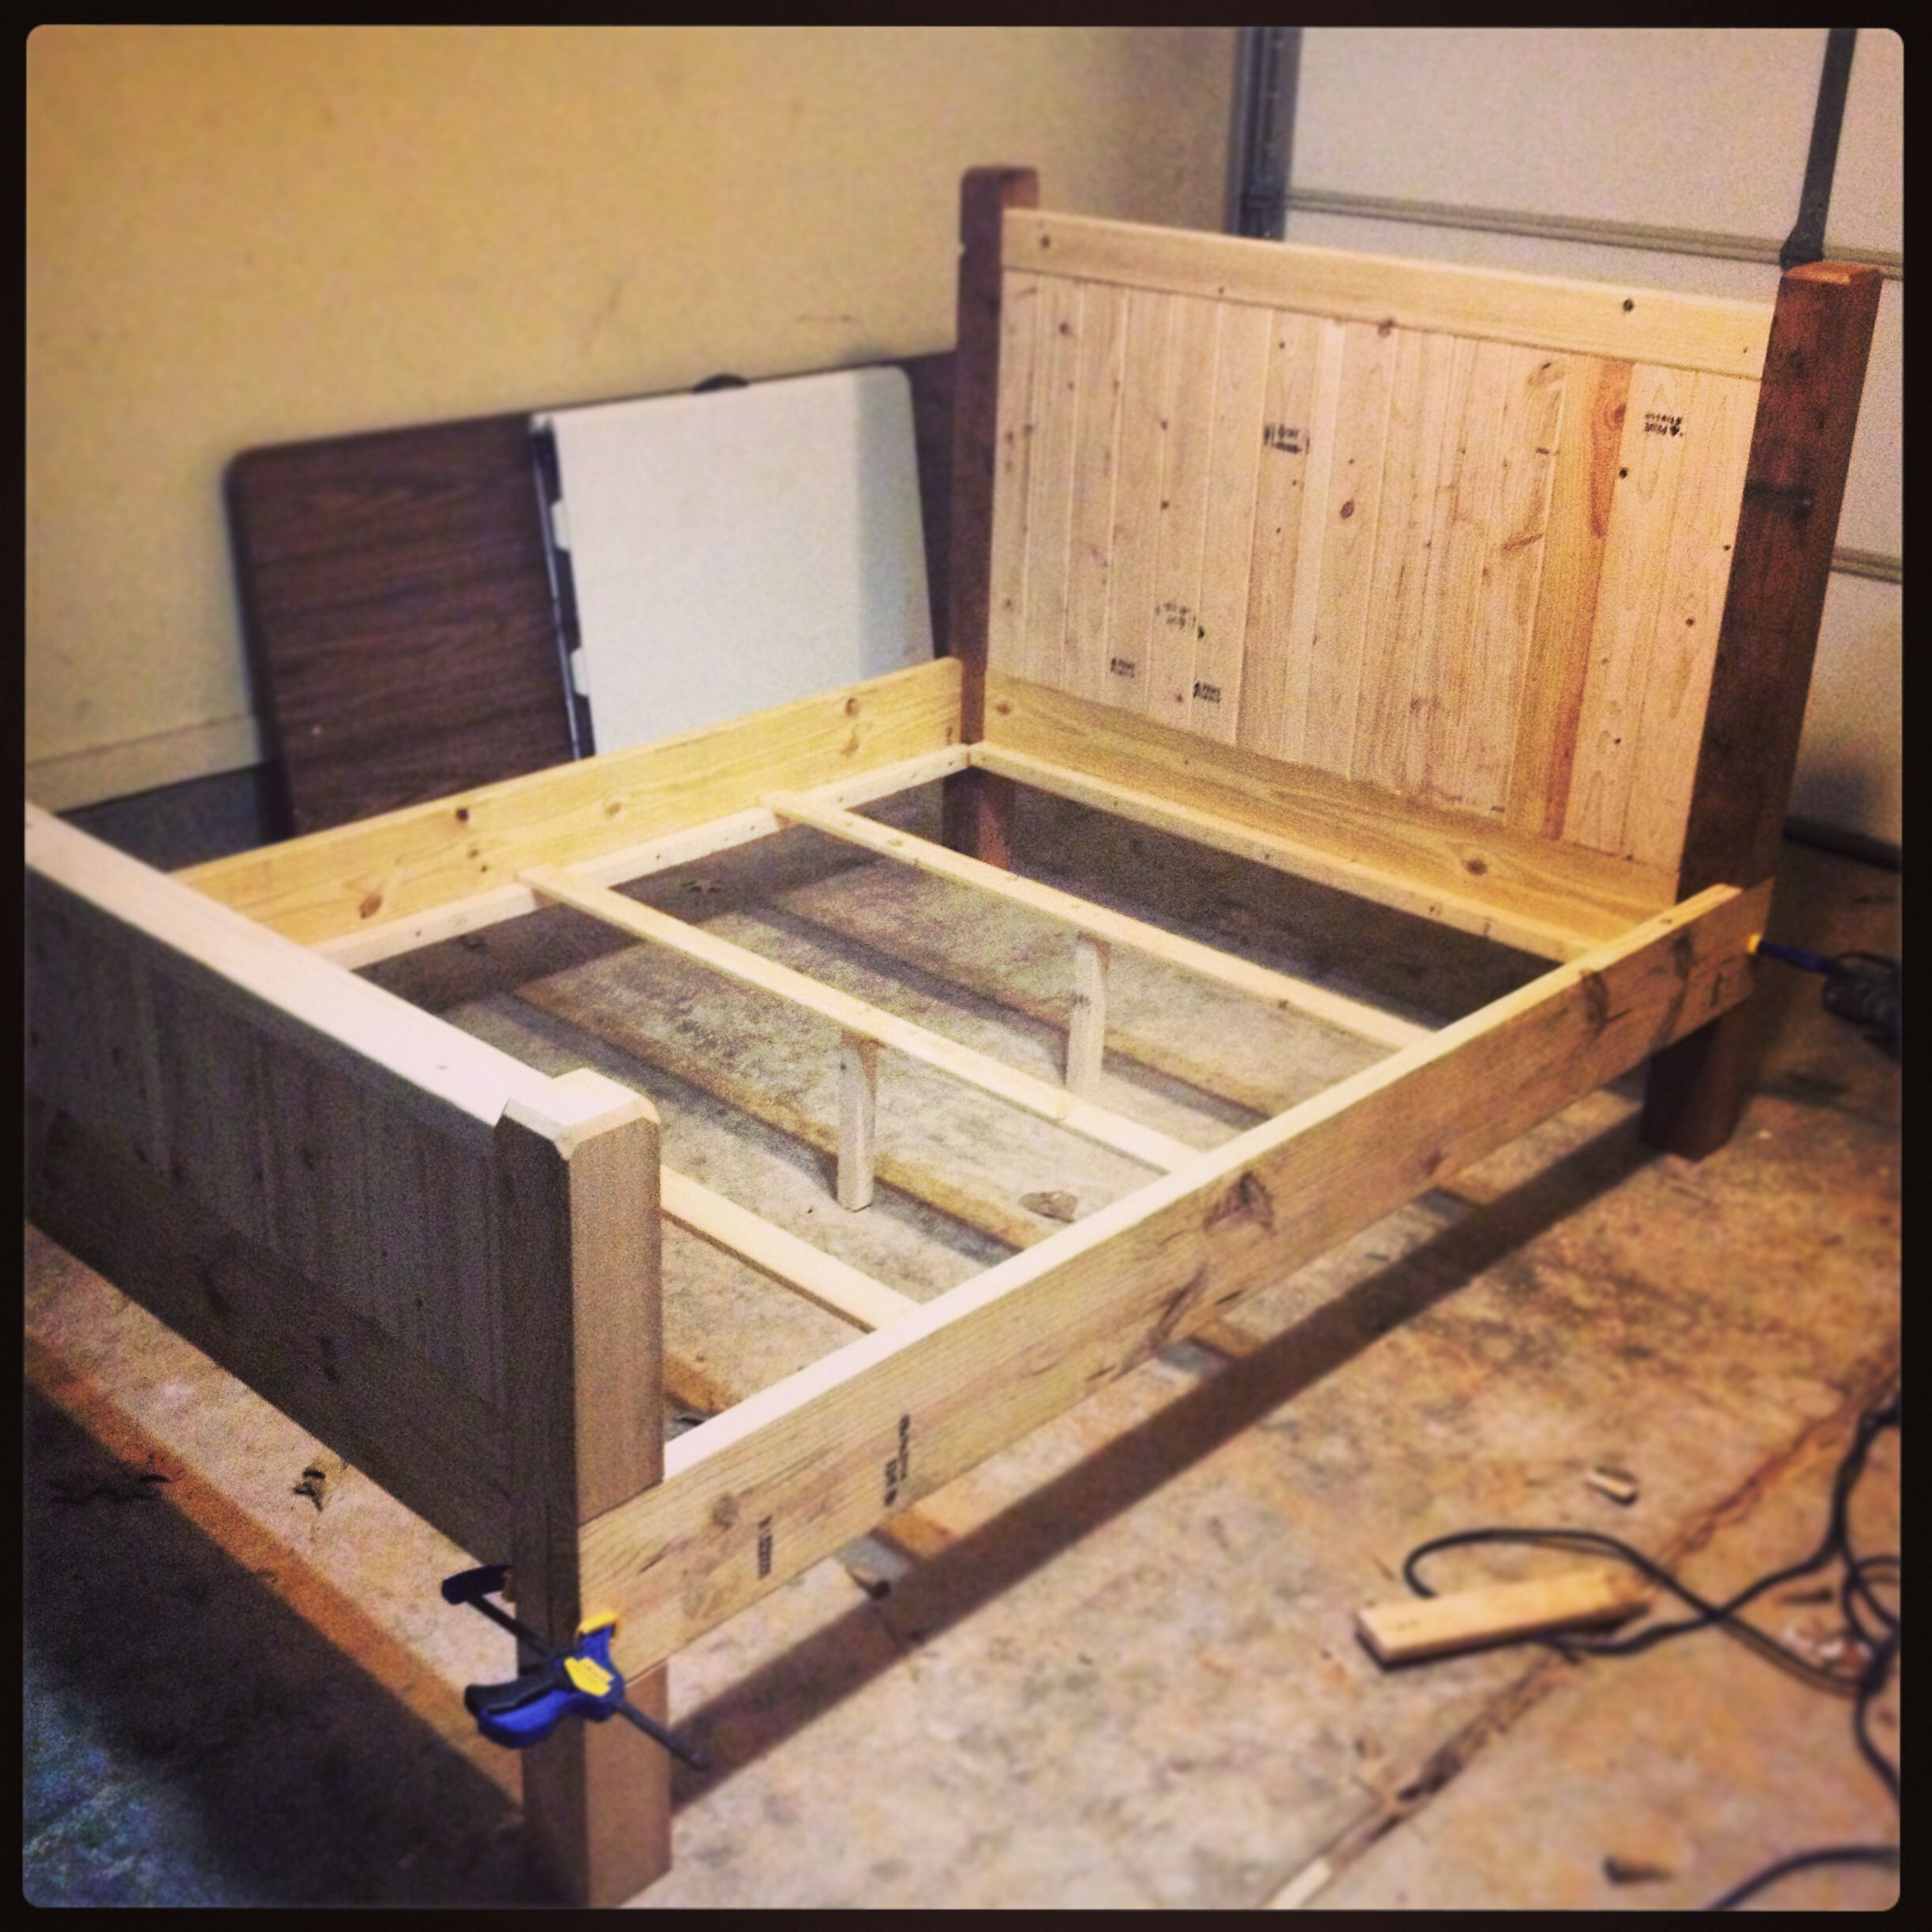 Diy Full Size Bed Frame Almost Finished Made With 2x4s 2x8s And